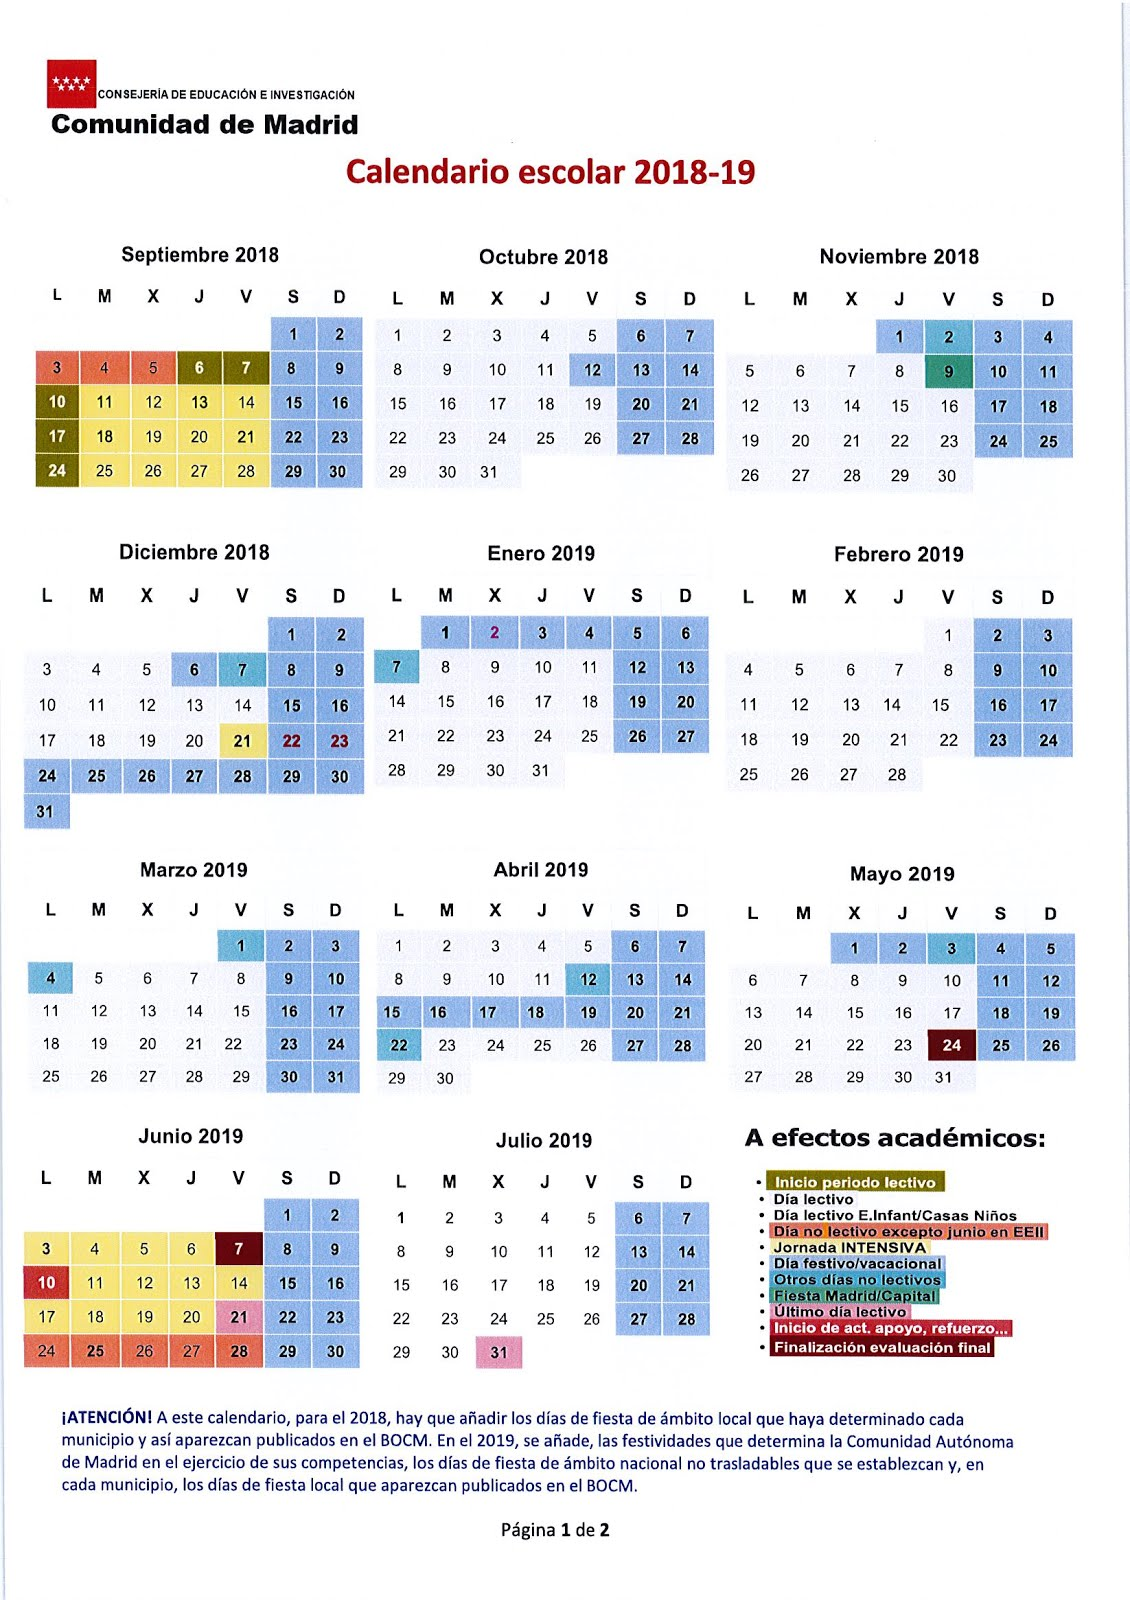 Calendario 2019 Escolar 2020 Madrid.Colegio Duque De Rivas